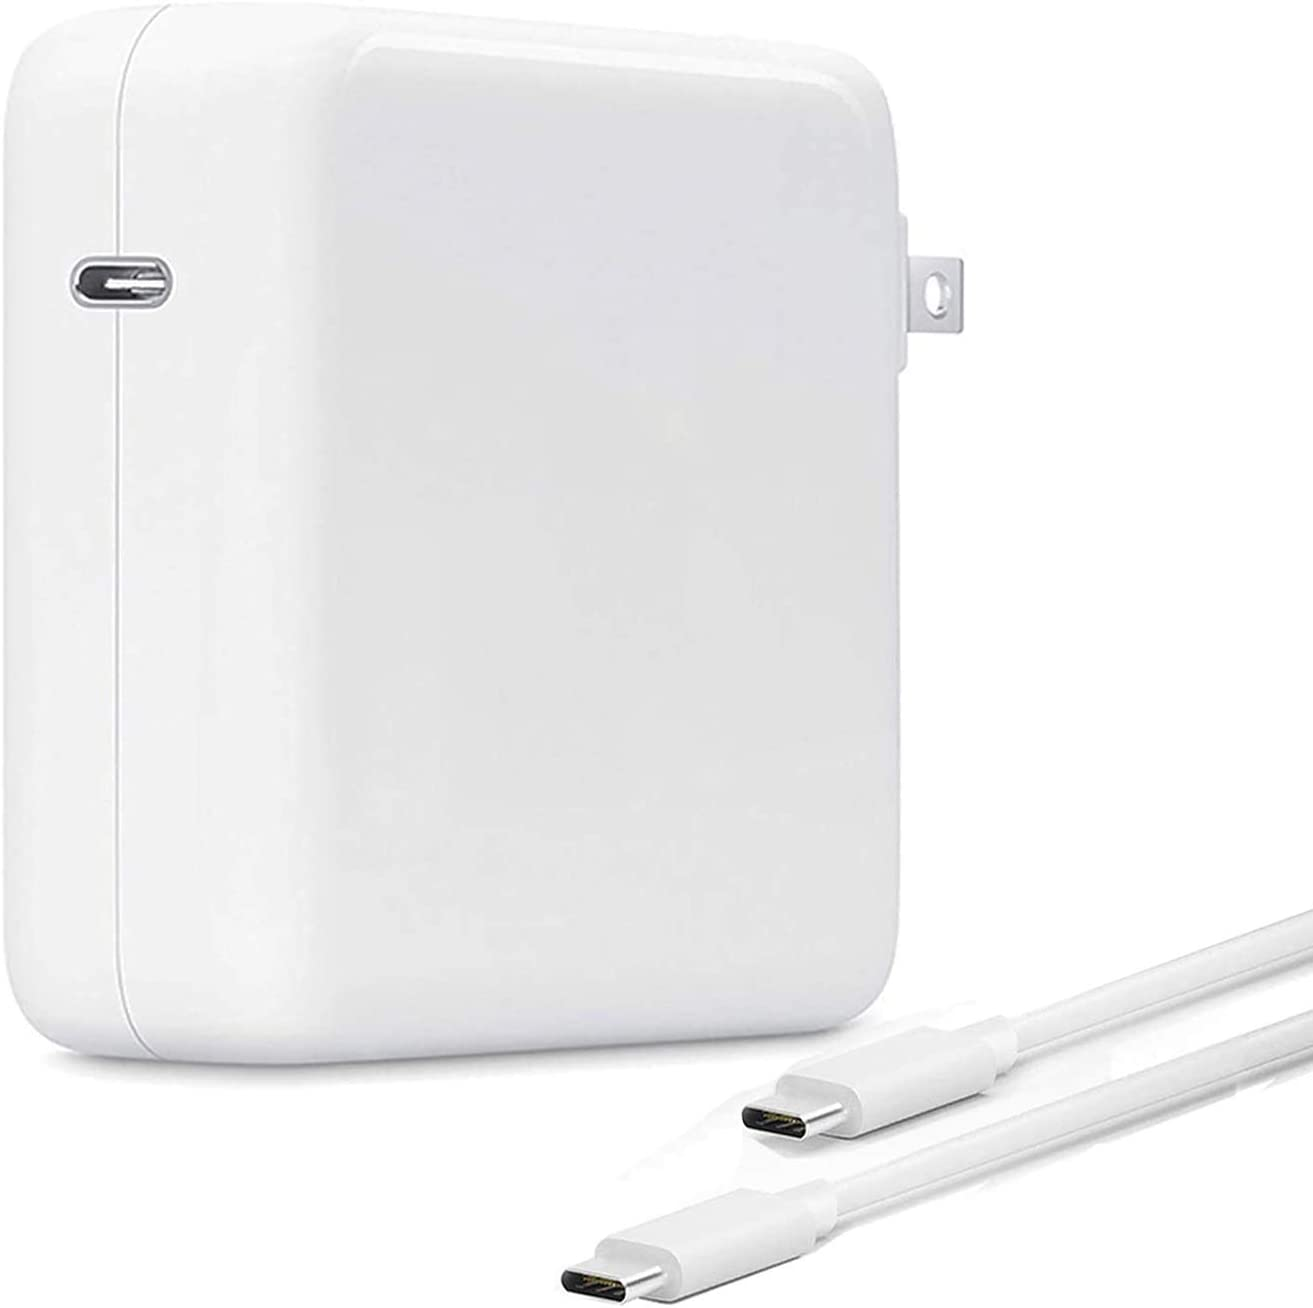 Mac Book Pro Charger,87W USB C Power Adapter Compatible with MacBook Pro 13 Inch 15 Inch 2020 2019 2018 Include Charge Cable